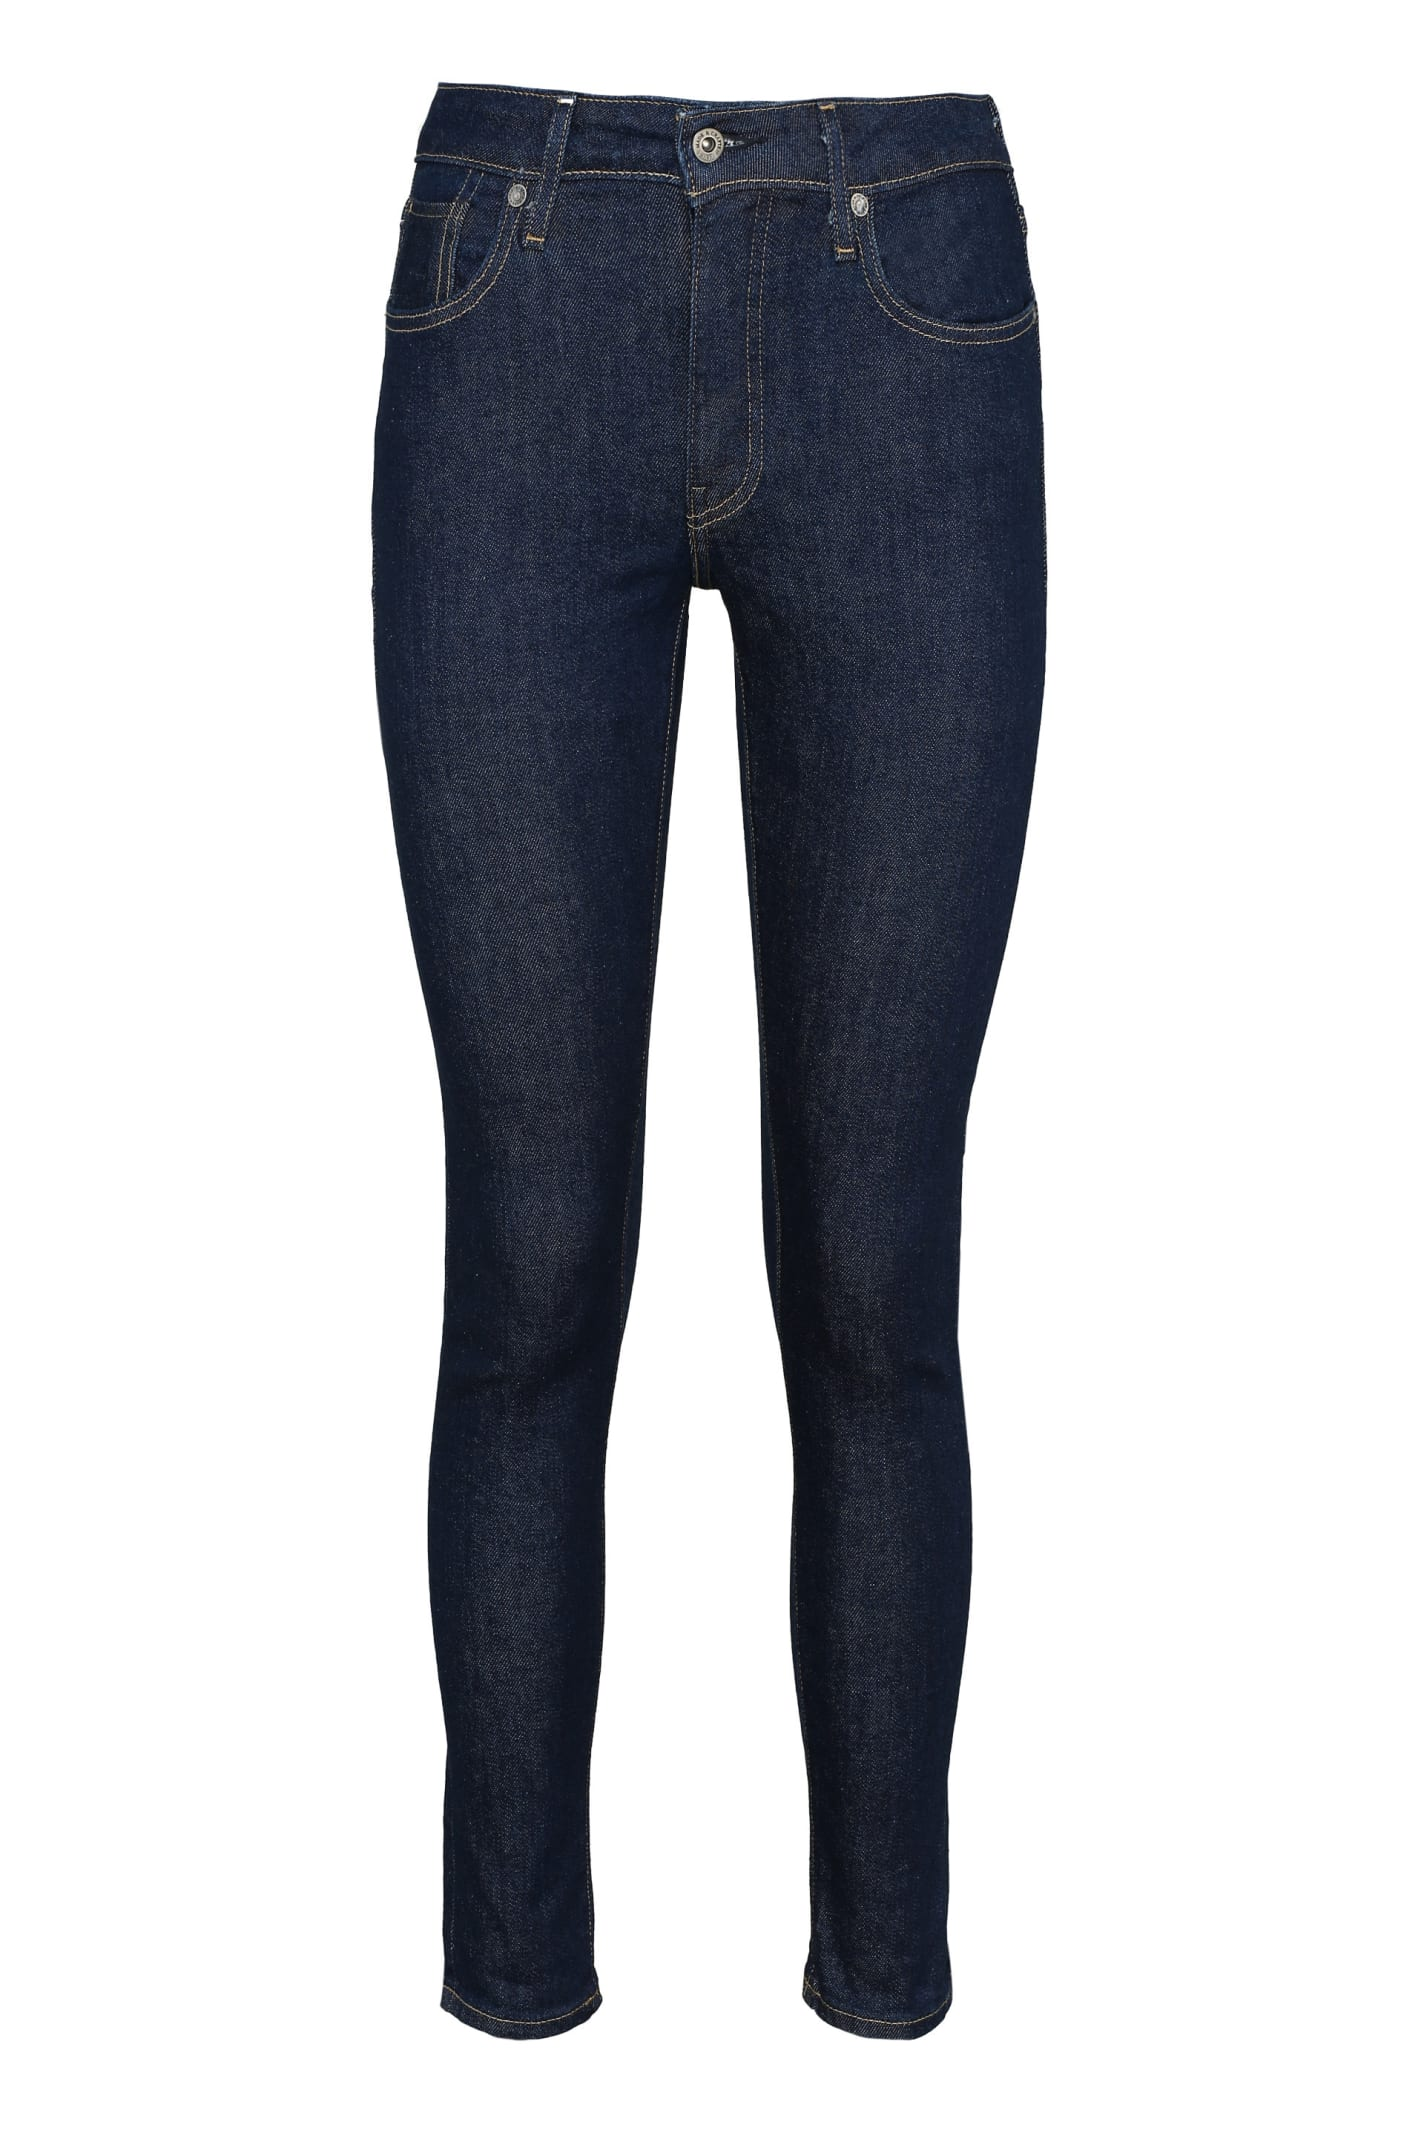 Levis 721 High-rise Skinny-fit Jeans